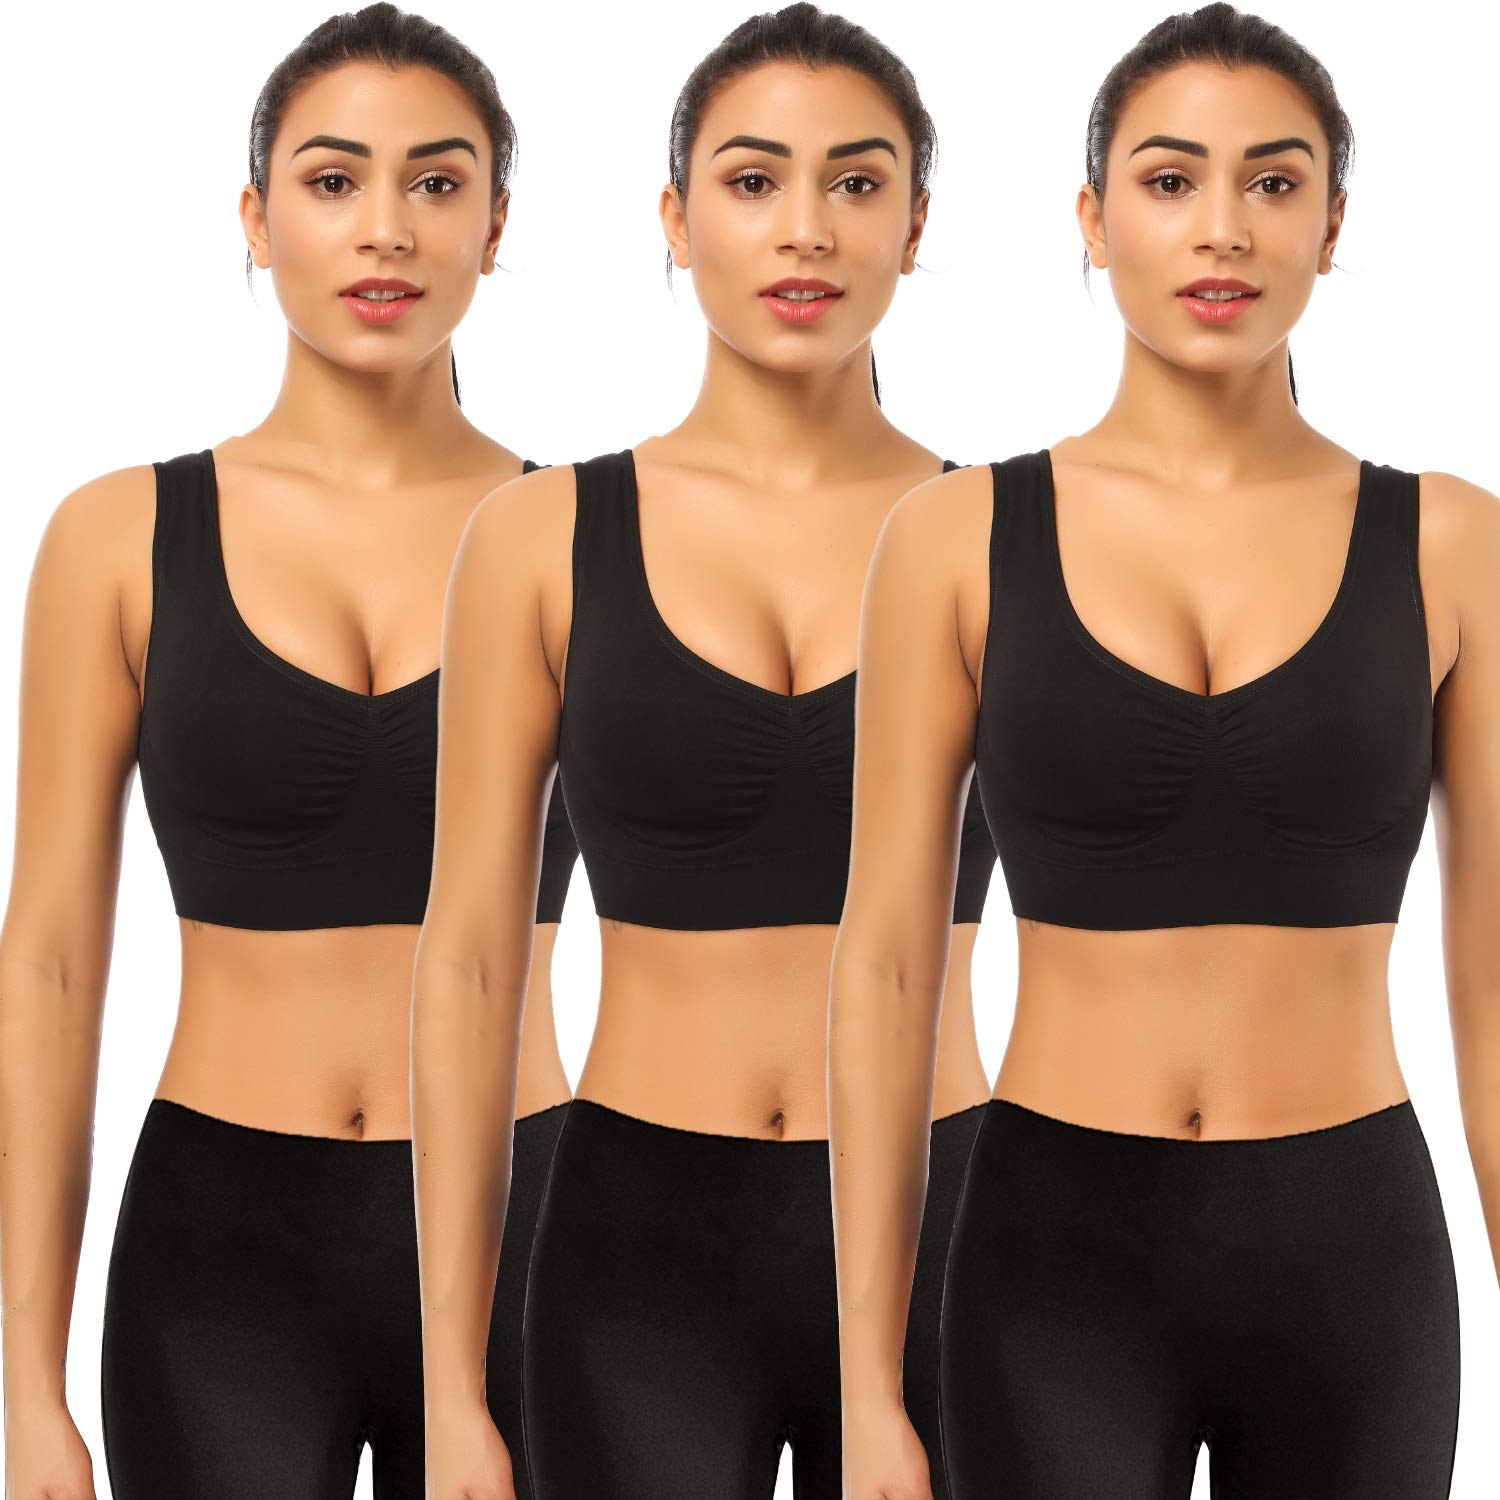 BESTENA Sports Bras for Women, 3 Pack Seamless Comfortable Yoga Bra with Removable Pads(Black,XX-Large) by BESTENA